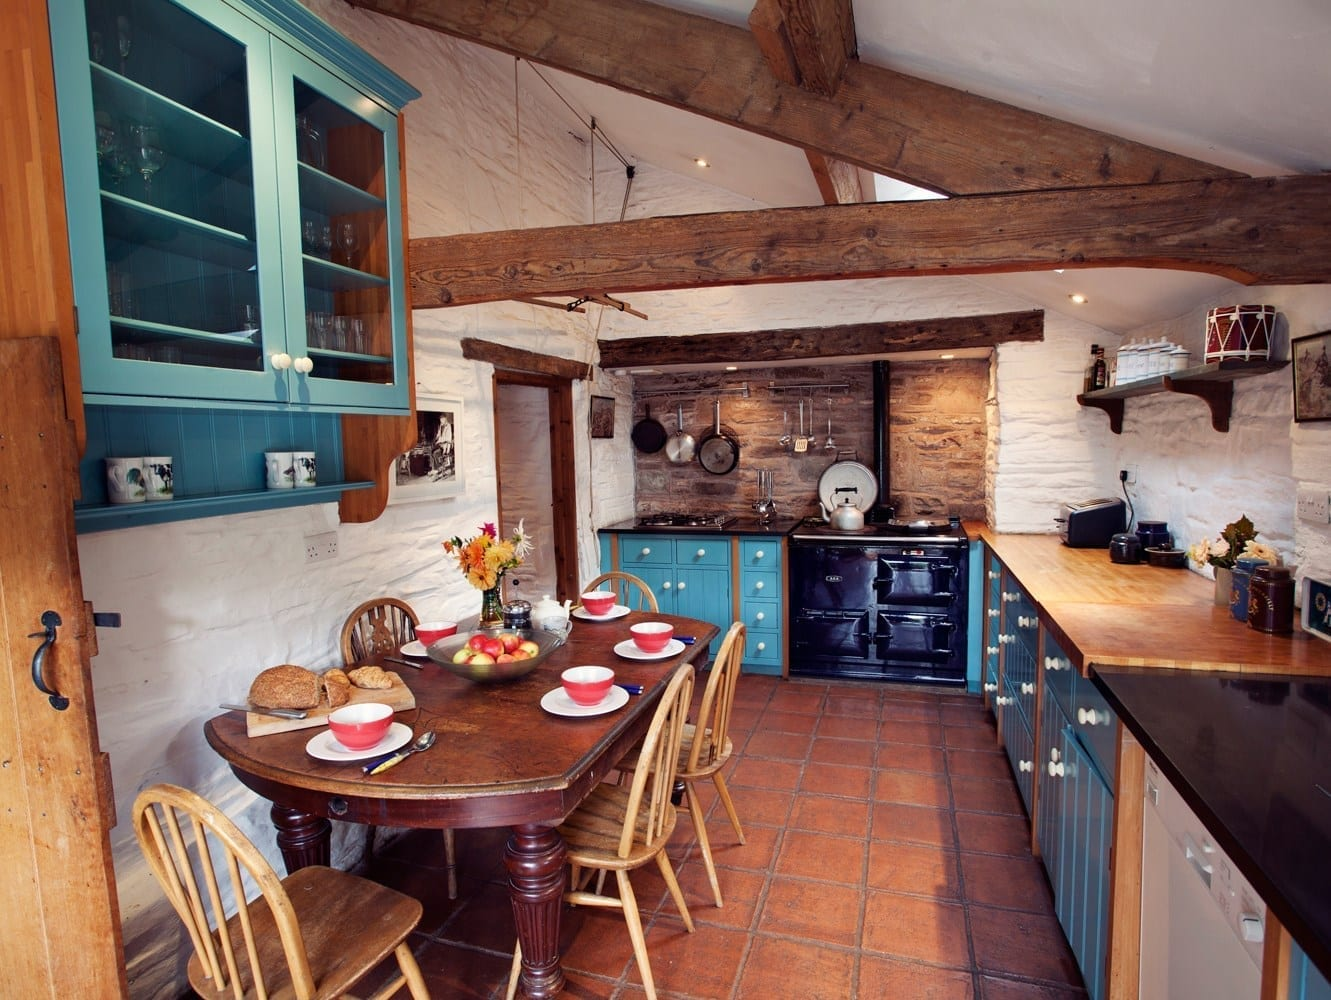 rustic country kitchen with dining table and chairs